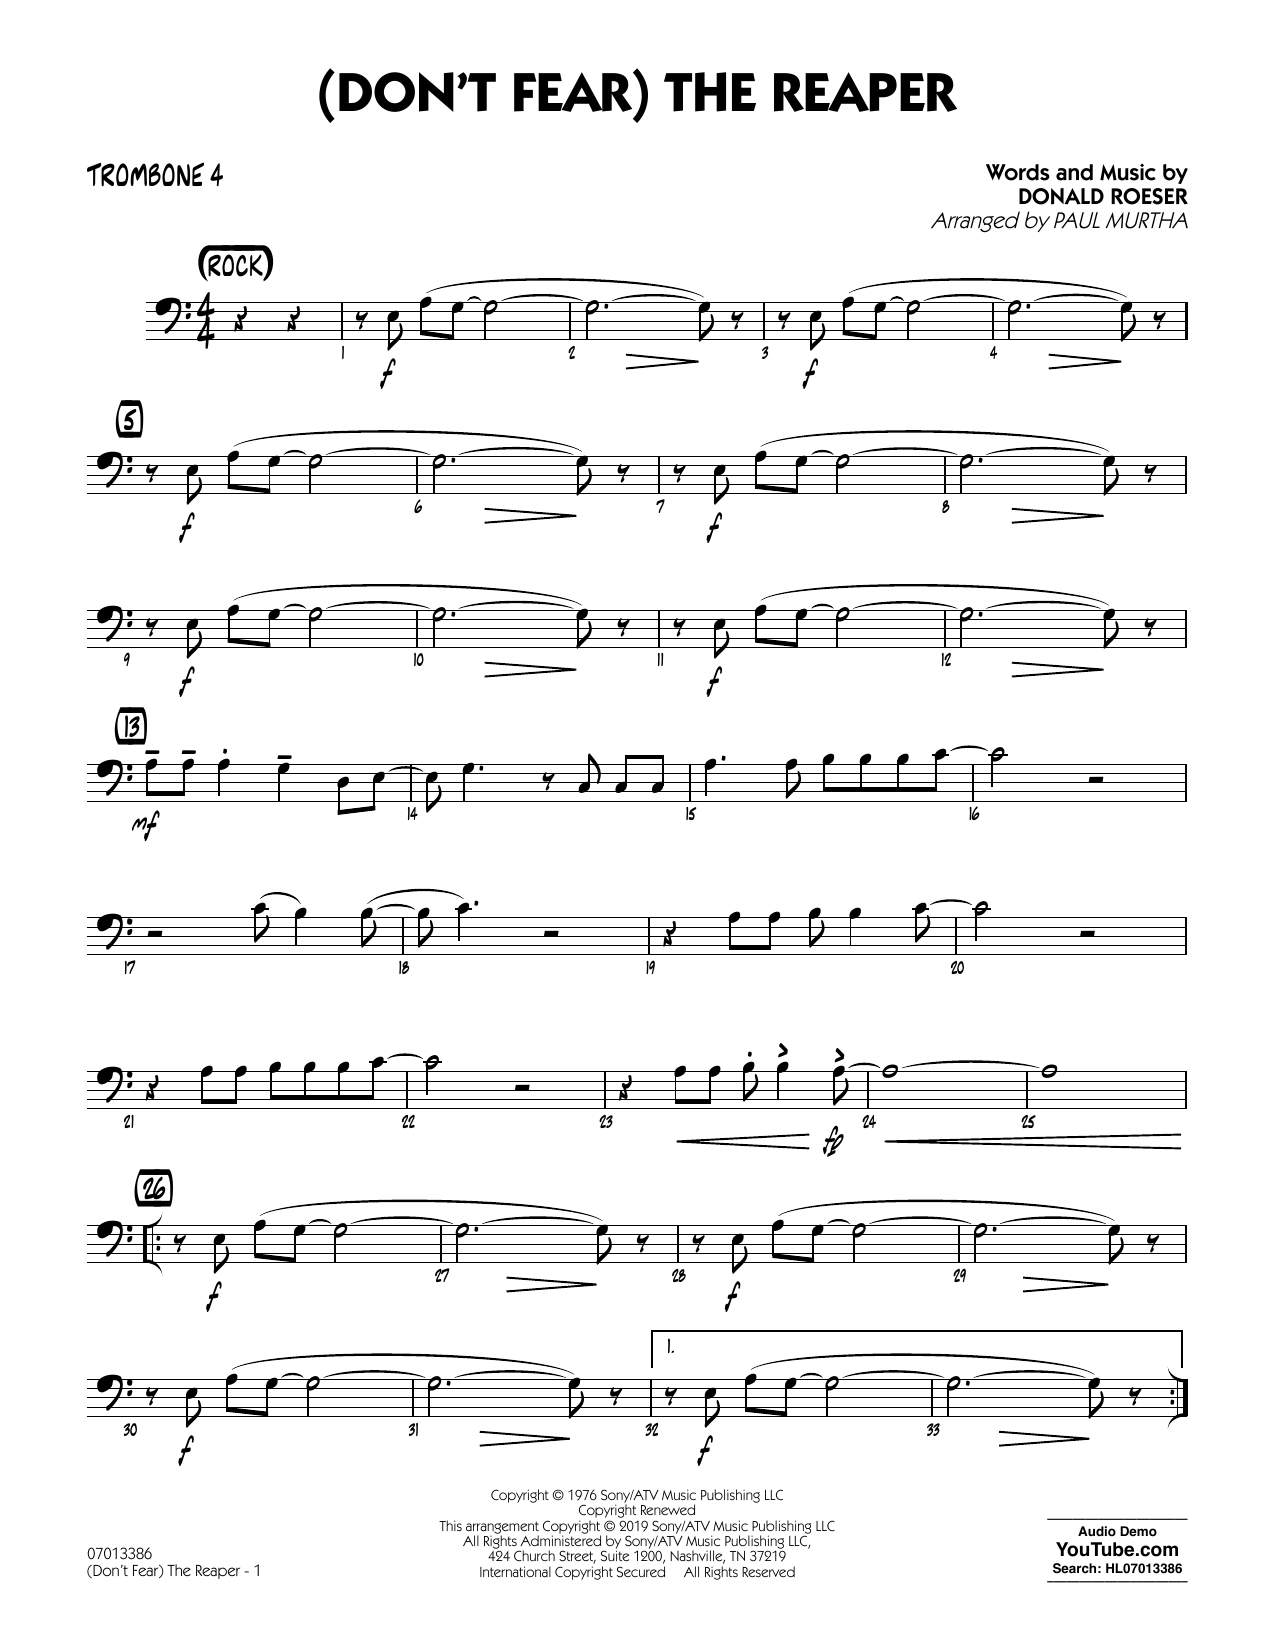 Blue Oyster Cult (Don't Fear) The Reaper (arr. Paul Murtha) - Trombone 4 sheet music preview music notes and score for Jazz Ensemble including 2 page(s)